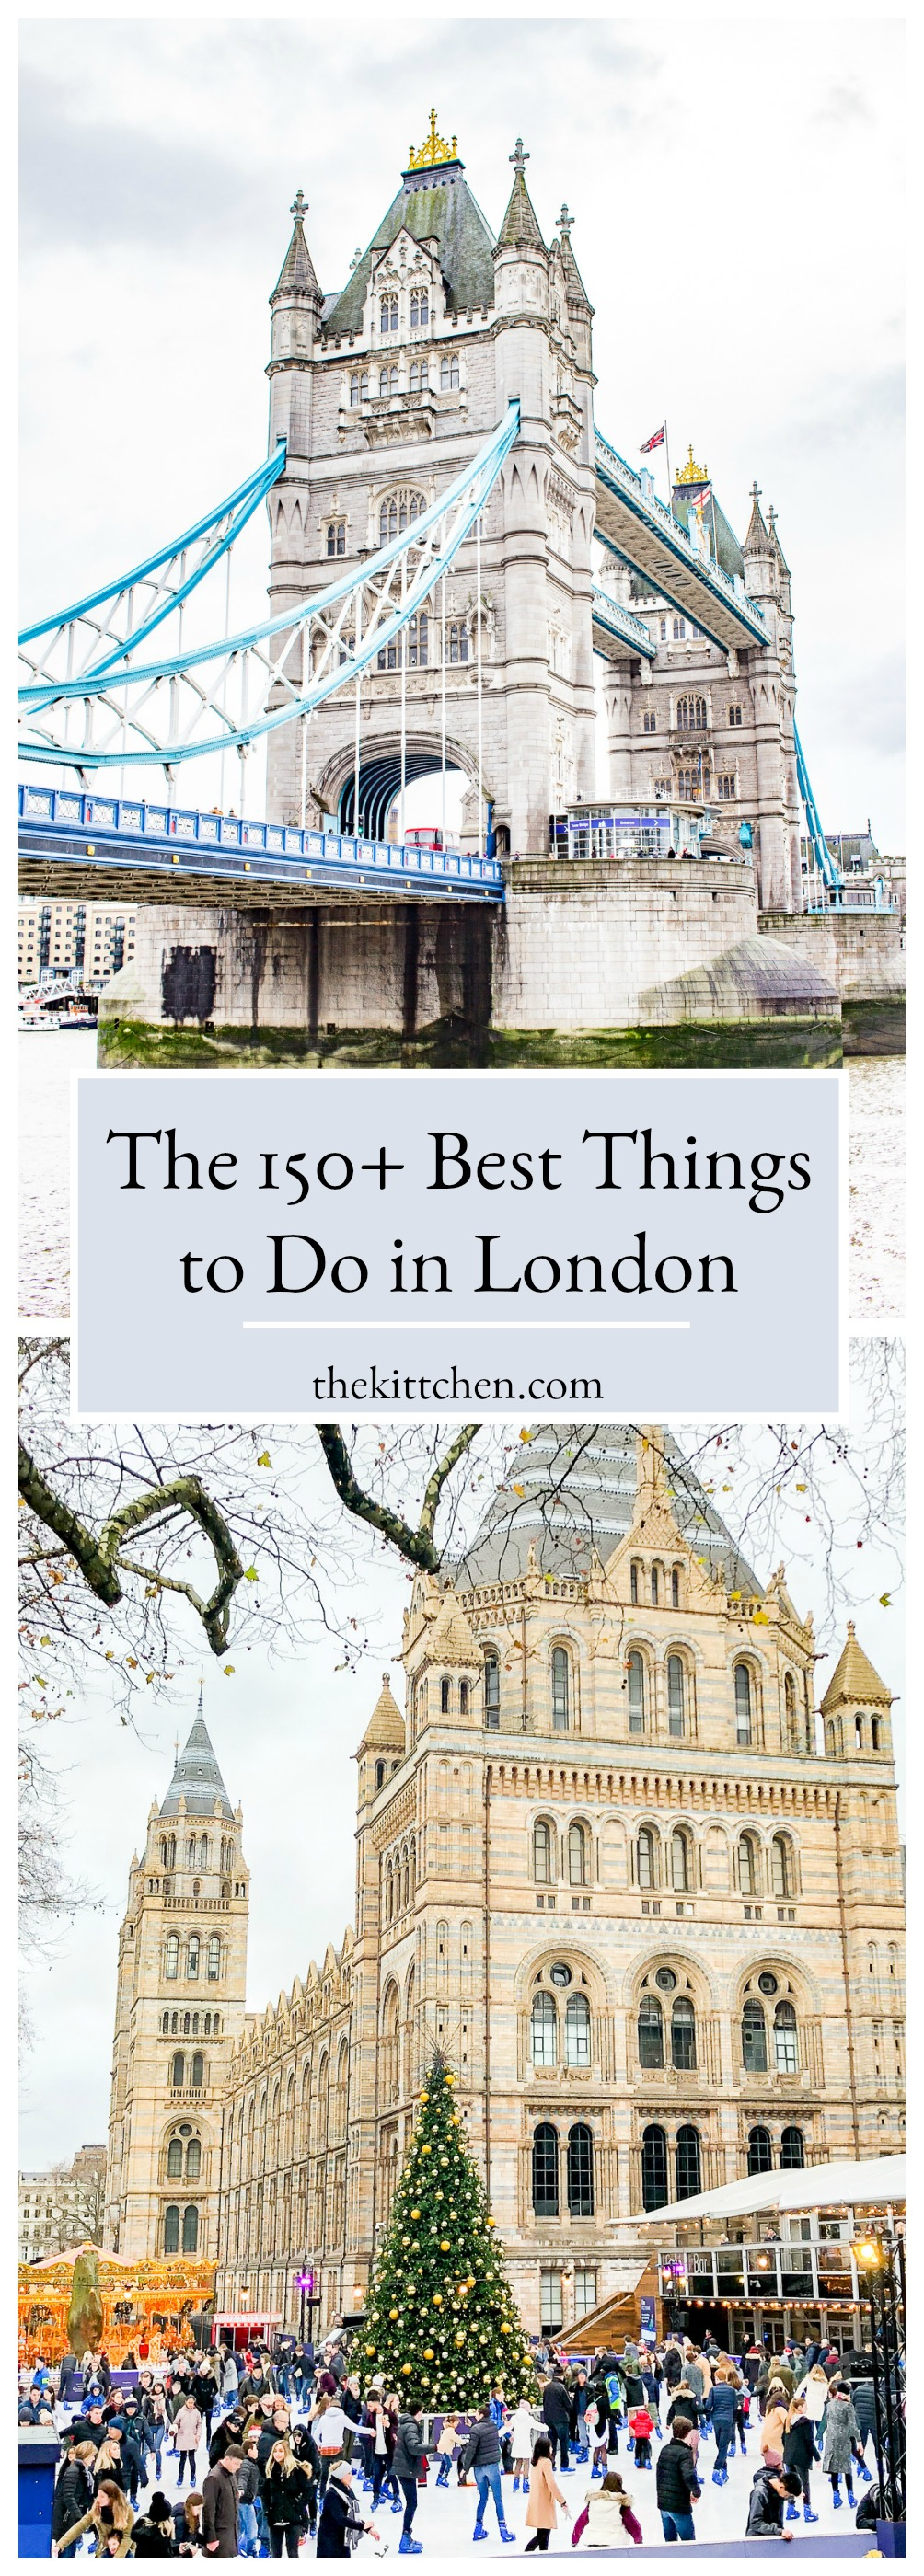 150+ Things to do in London - a complete guide to all of the best things to do in London!